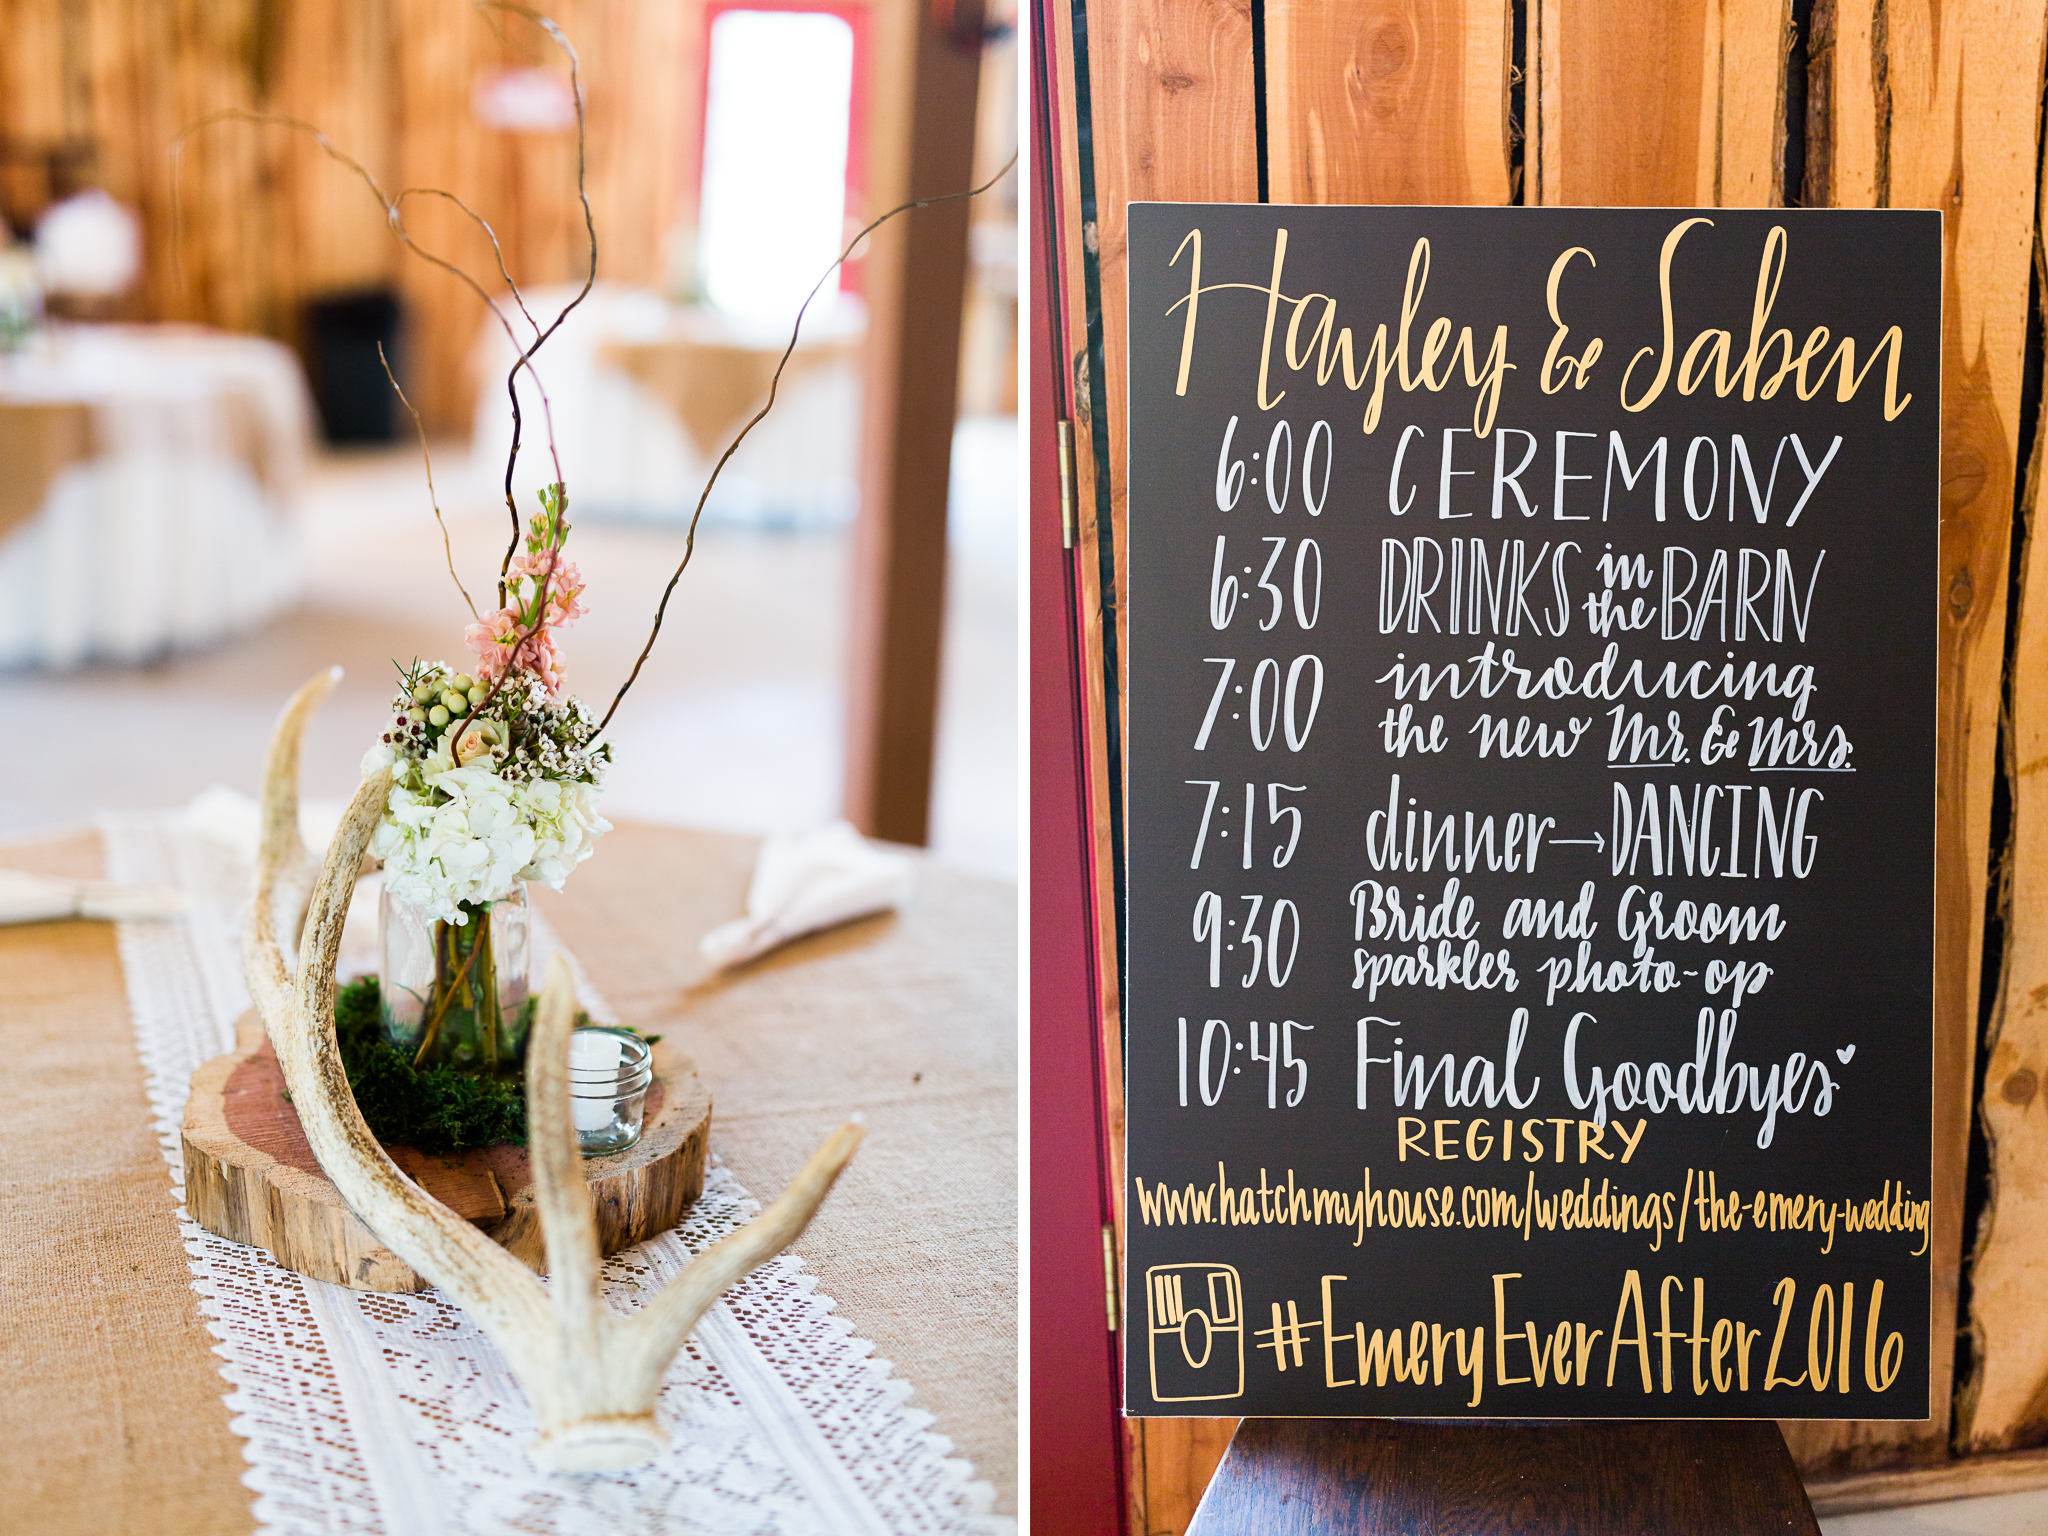 oklahoma wedding photographer pasture at willows ranch broken bow chalkboard itinerary